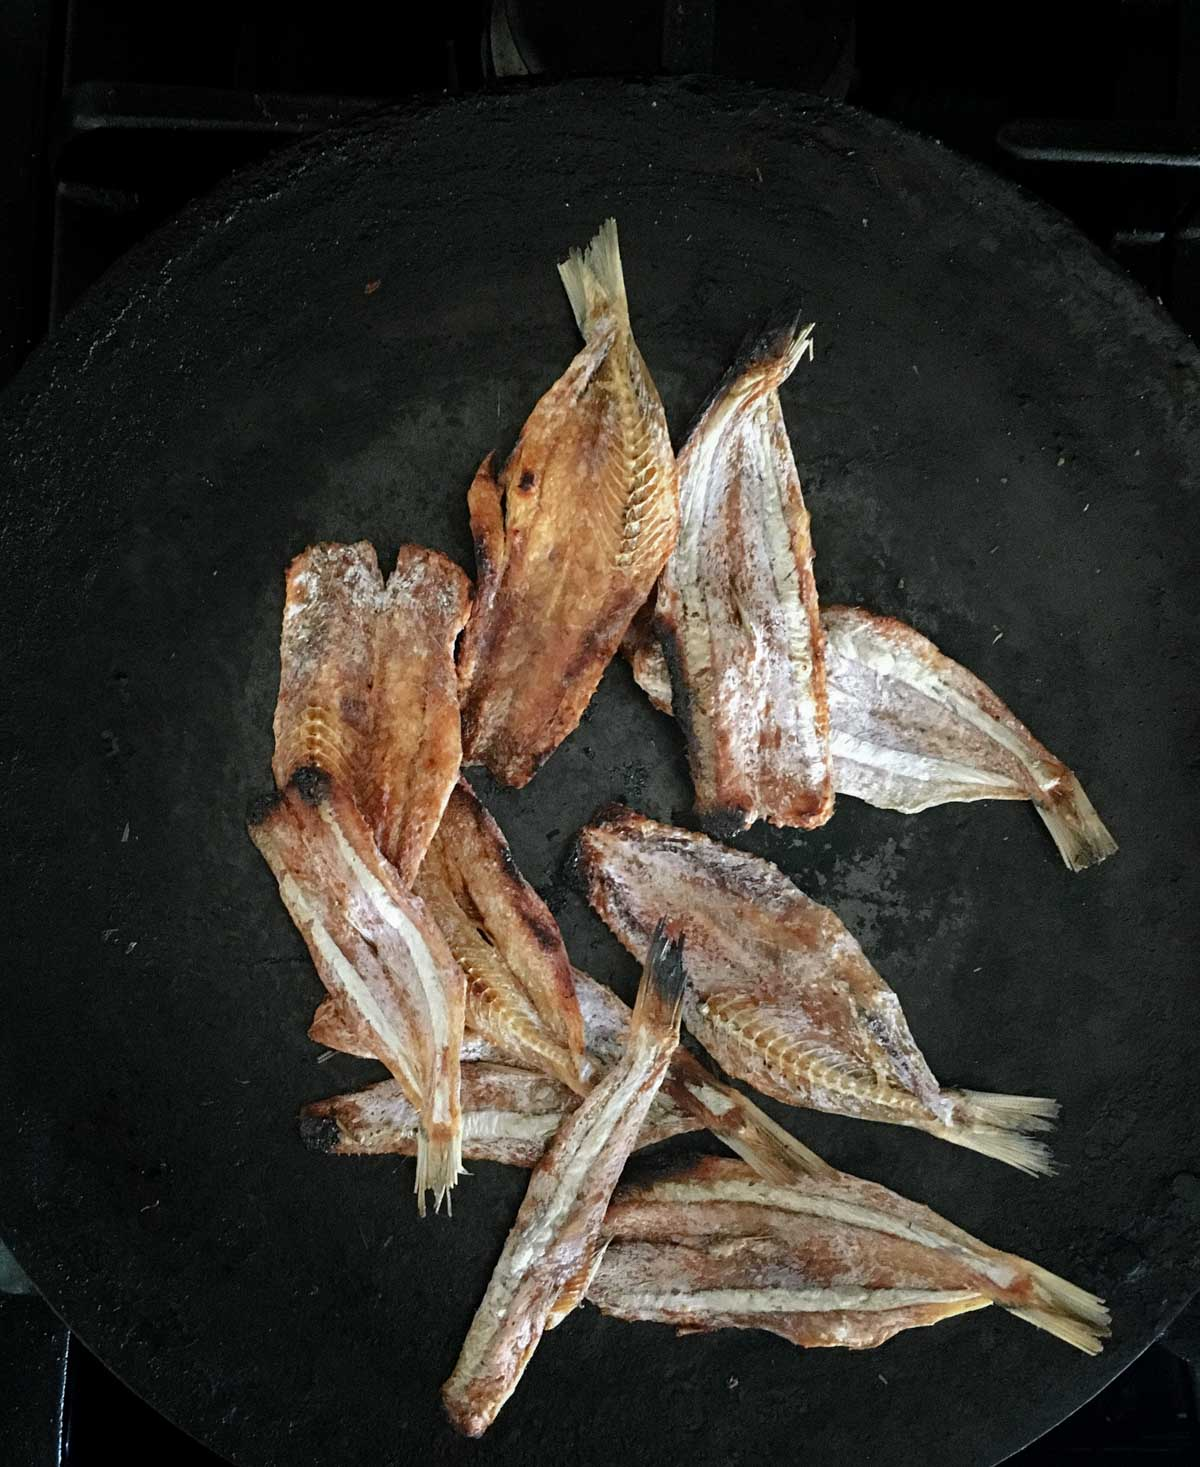 If you have loved fish cuisine in all its different forms, this easy-to-prepare tangy dried fish (or meen) chutney will be a welcome addition to your staple diet. Fish chutney paired with the nutritious Ganji (brown rice porridge or gruel) is comfort food at its best.